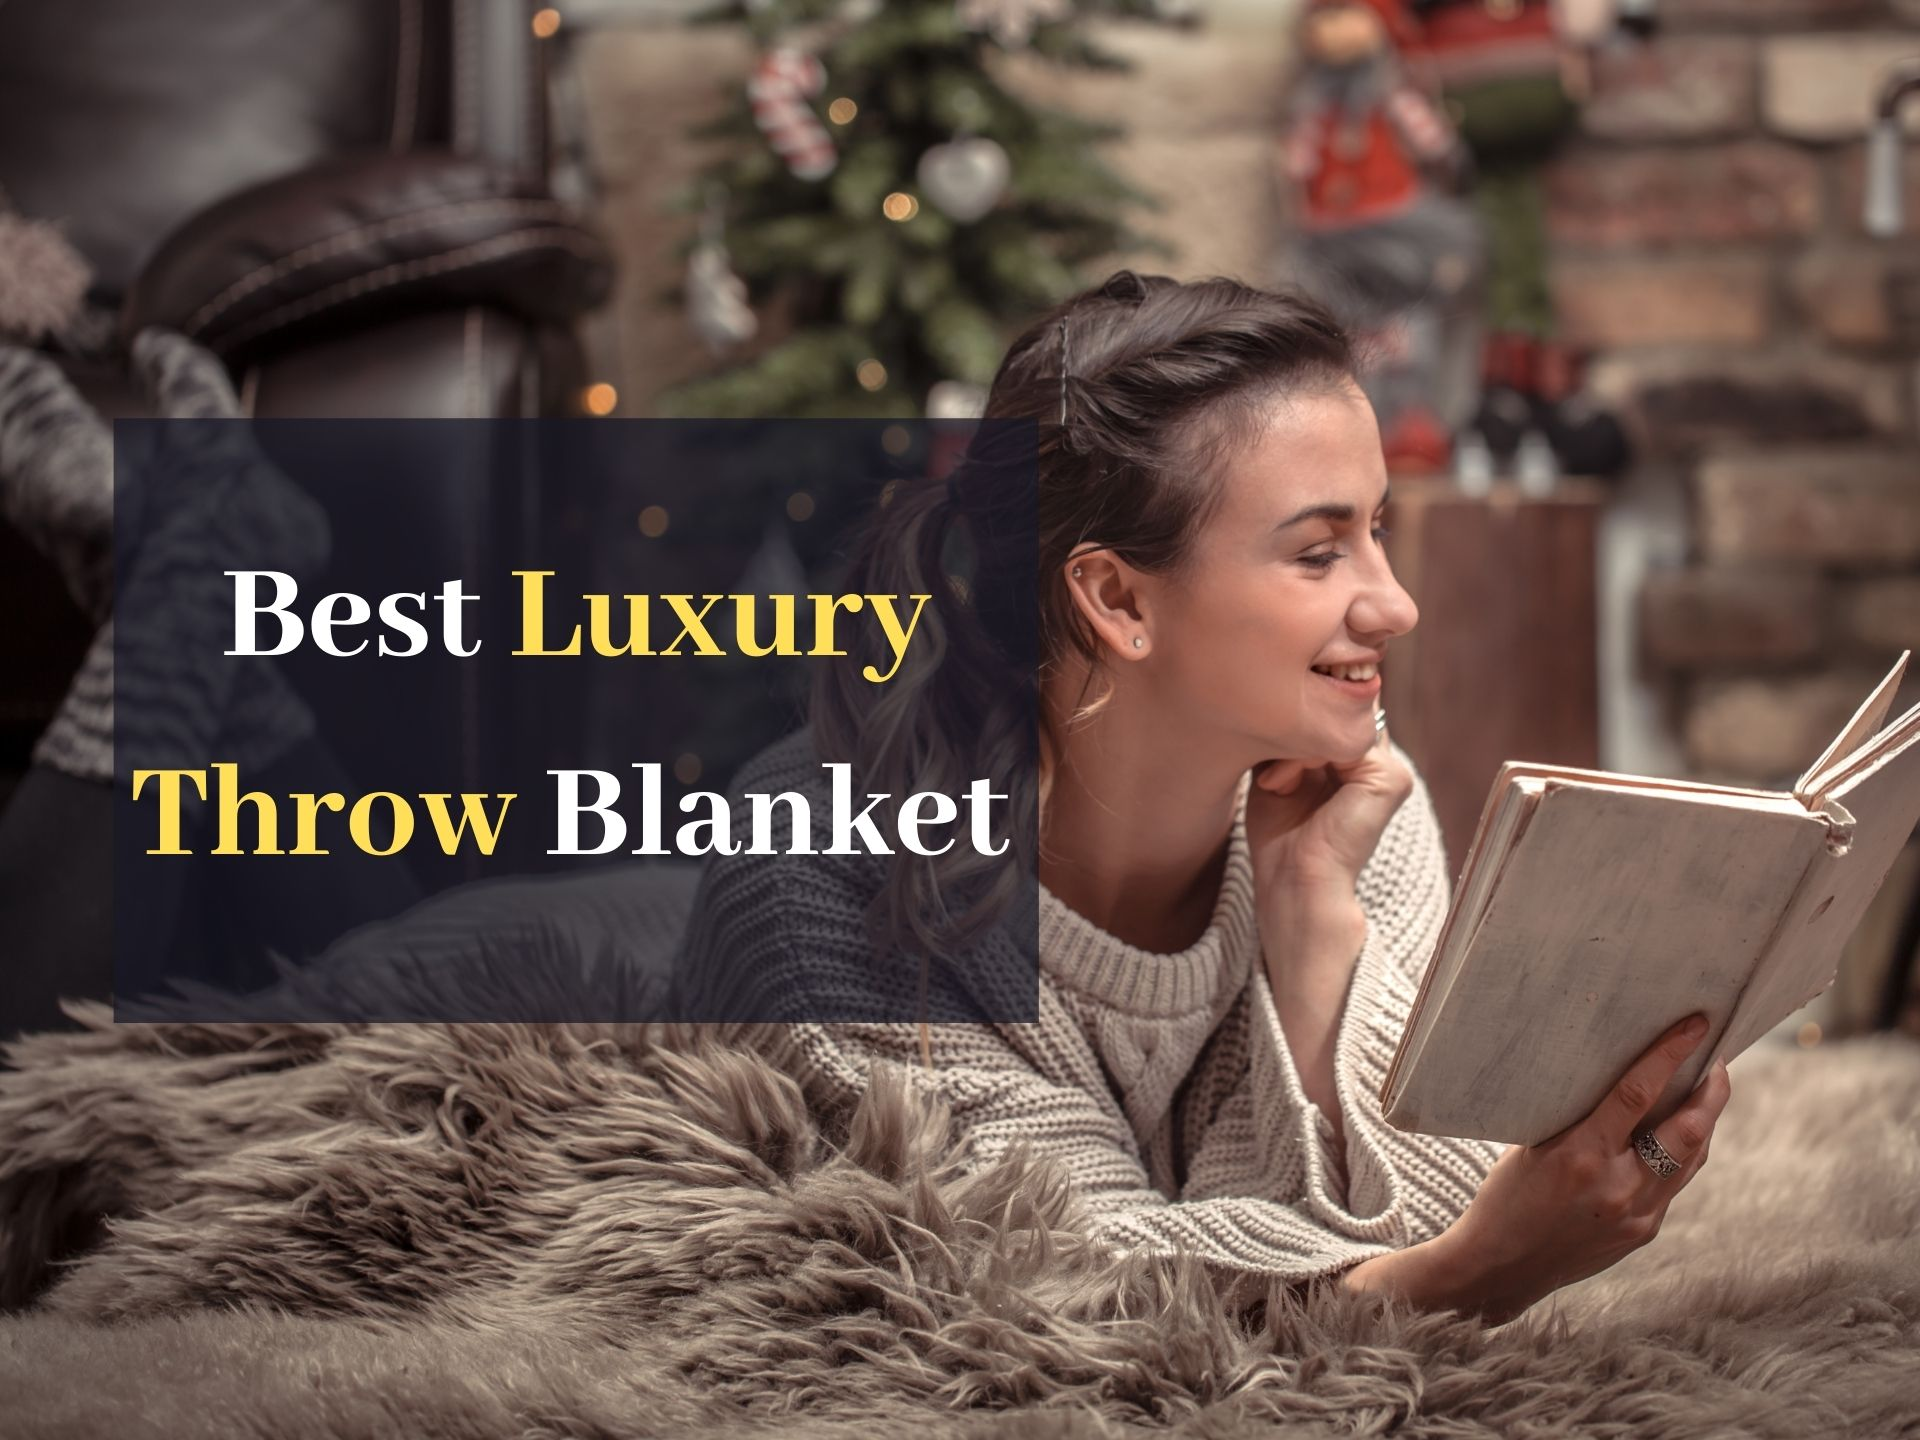 Best Luxury Throw Blanket